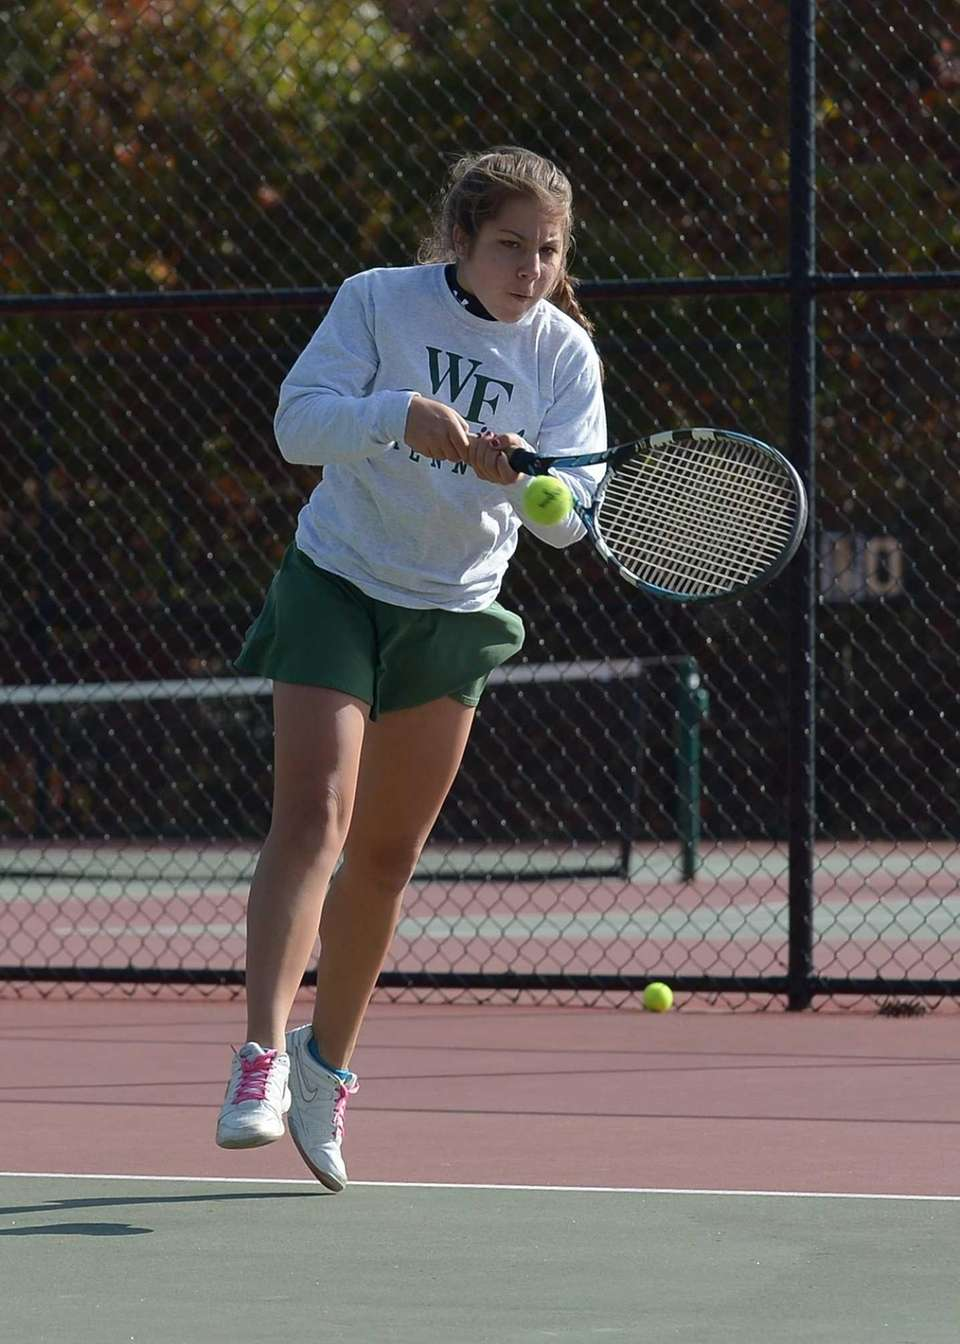 Christina Cali of William Floyd with a forehand